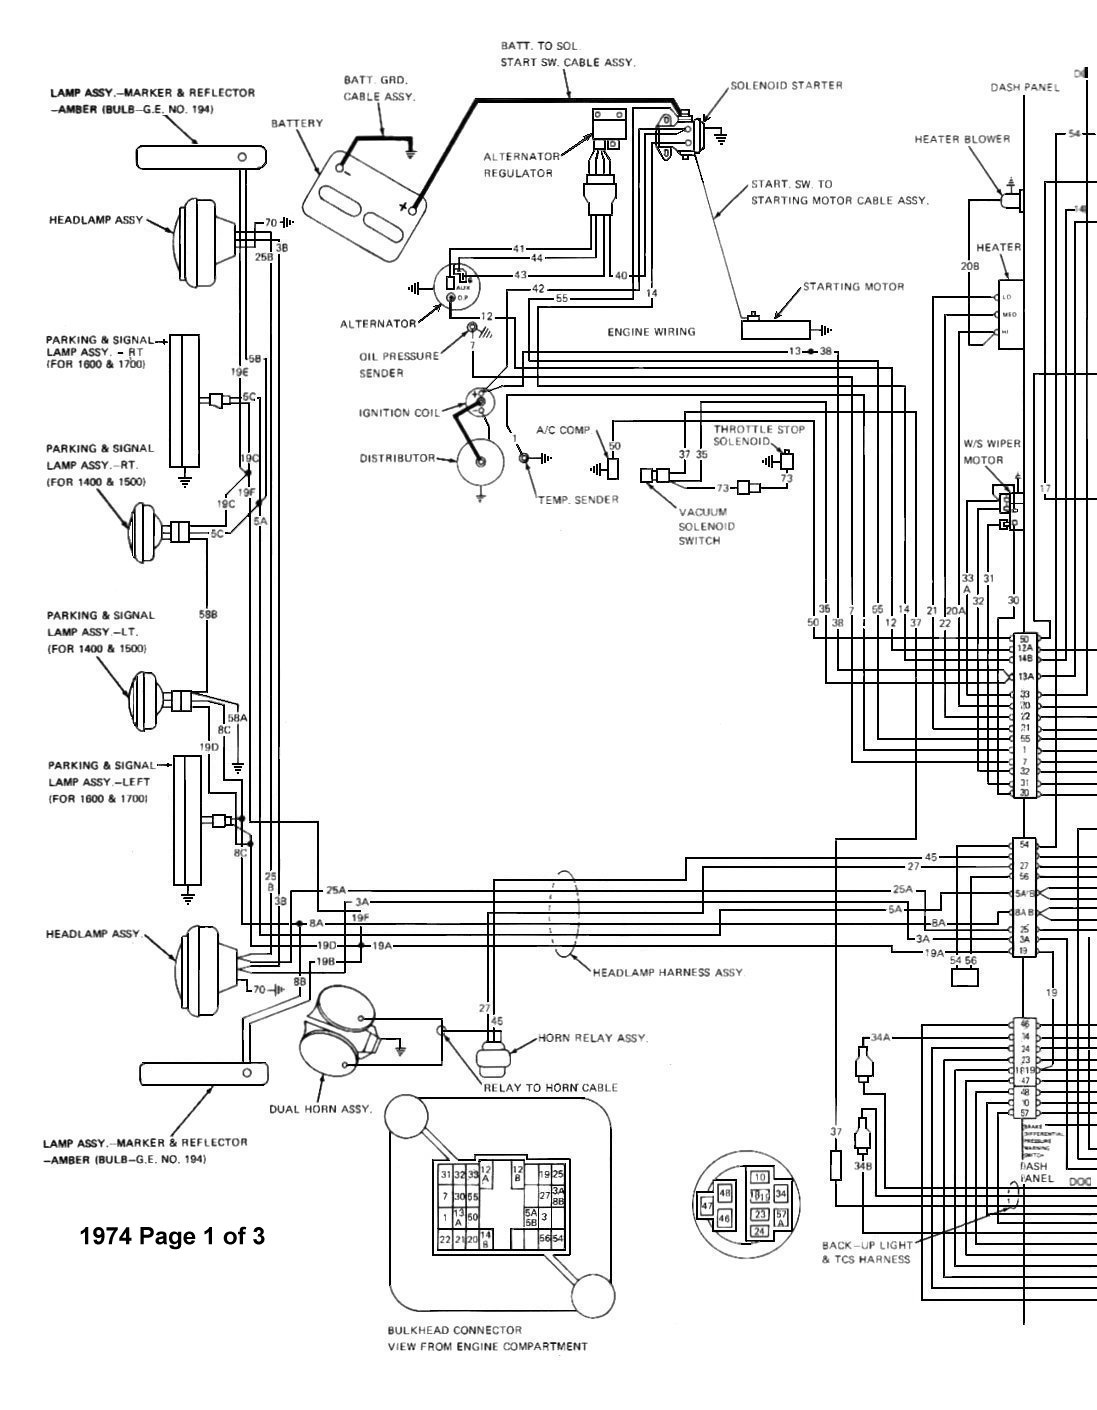 1974 Jeep Cj5 Wiring Diagram from oljeep.com